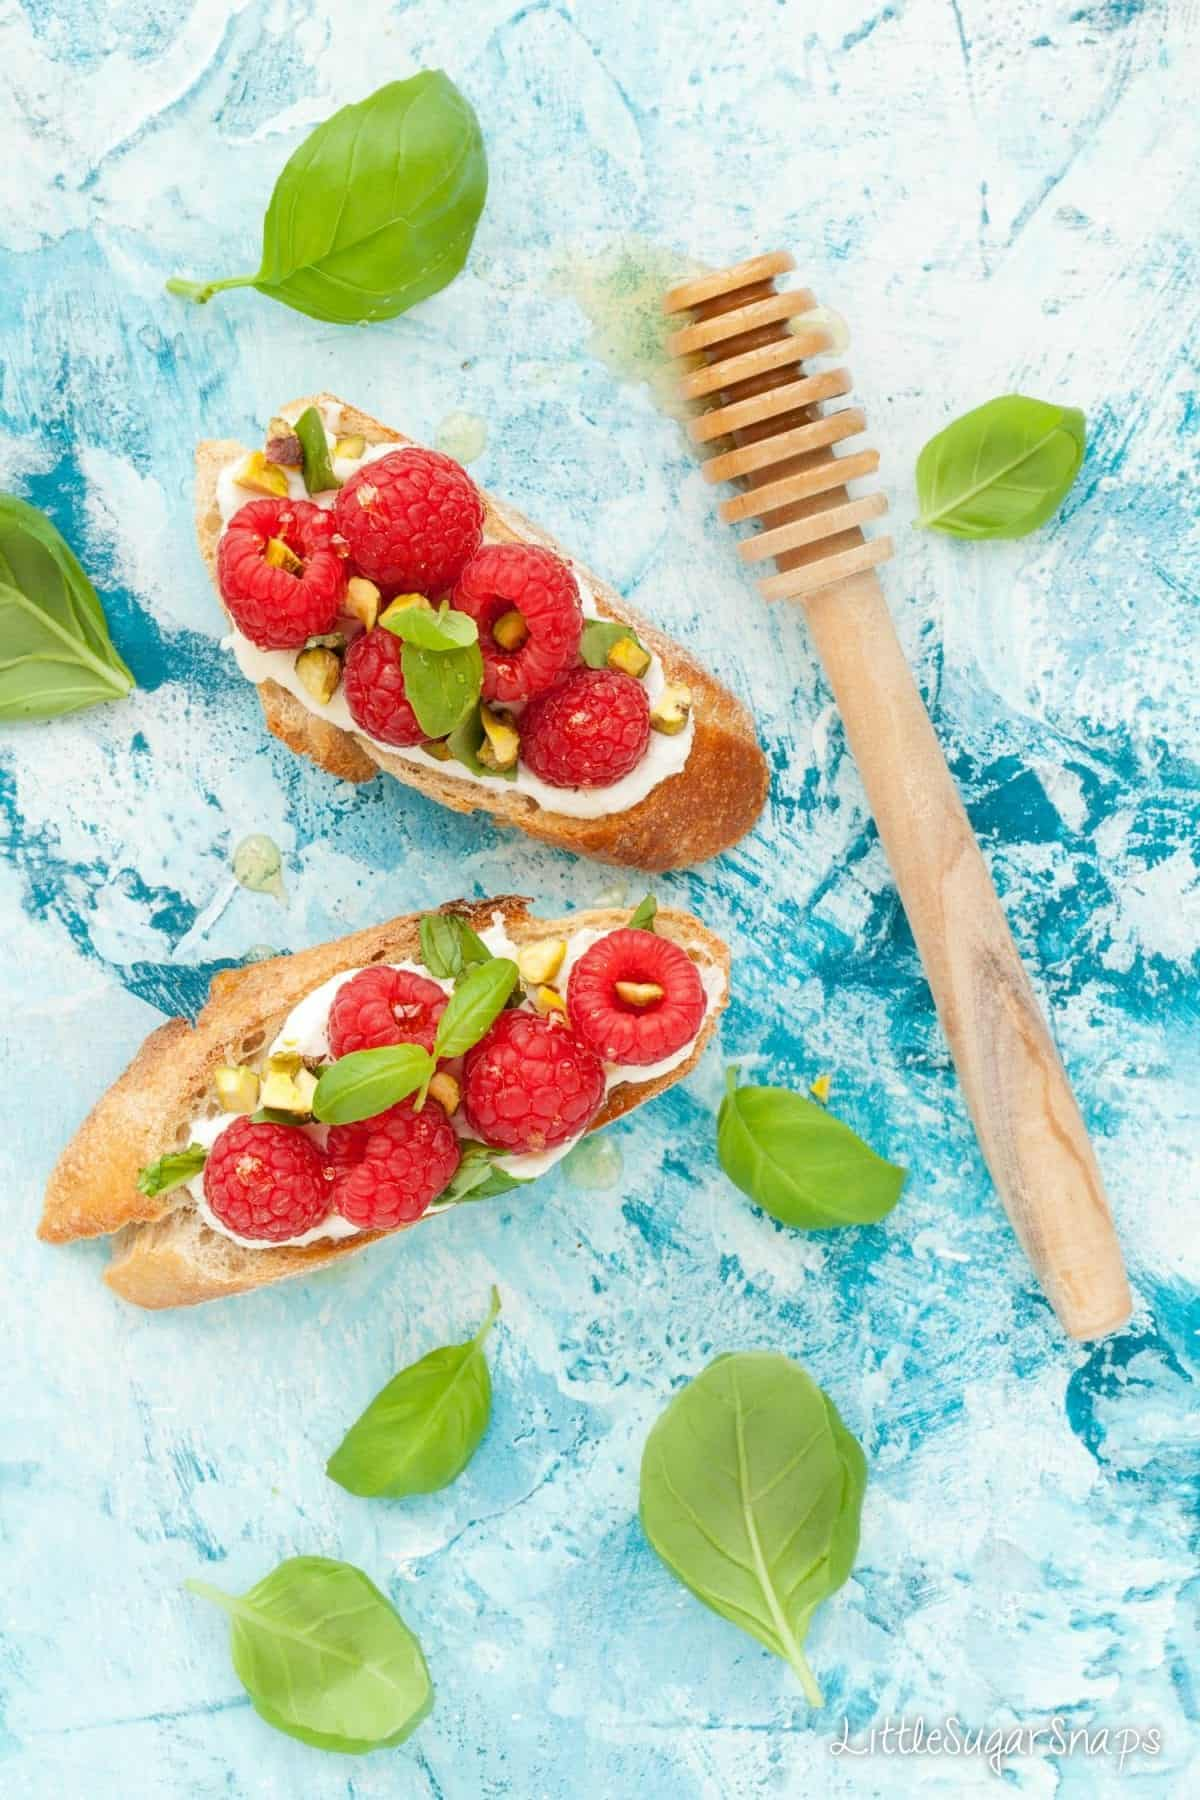 Overhead of toasted baguette topped with soft cheese, raspberries, pistachio and basil